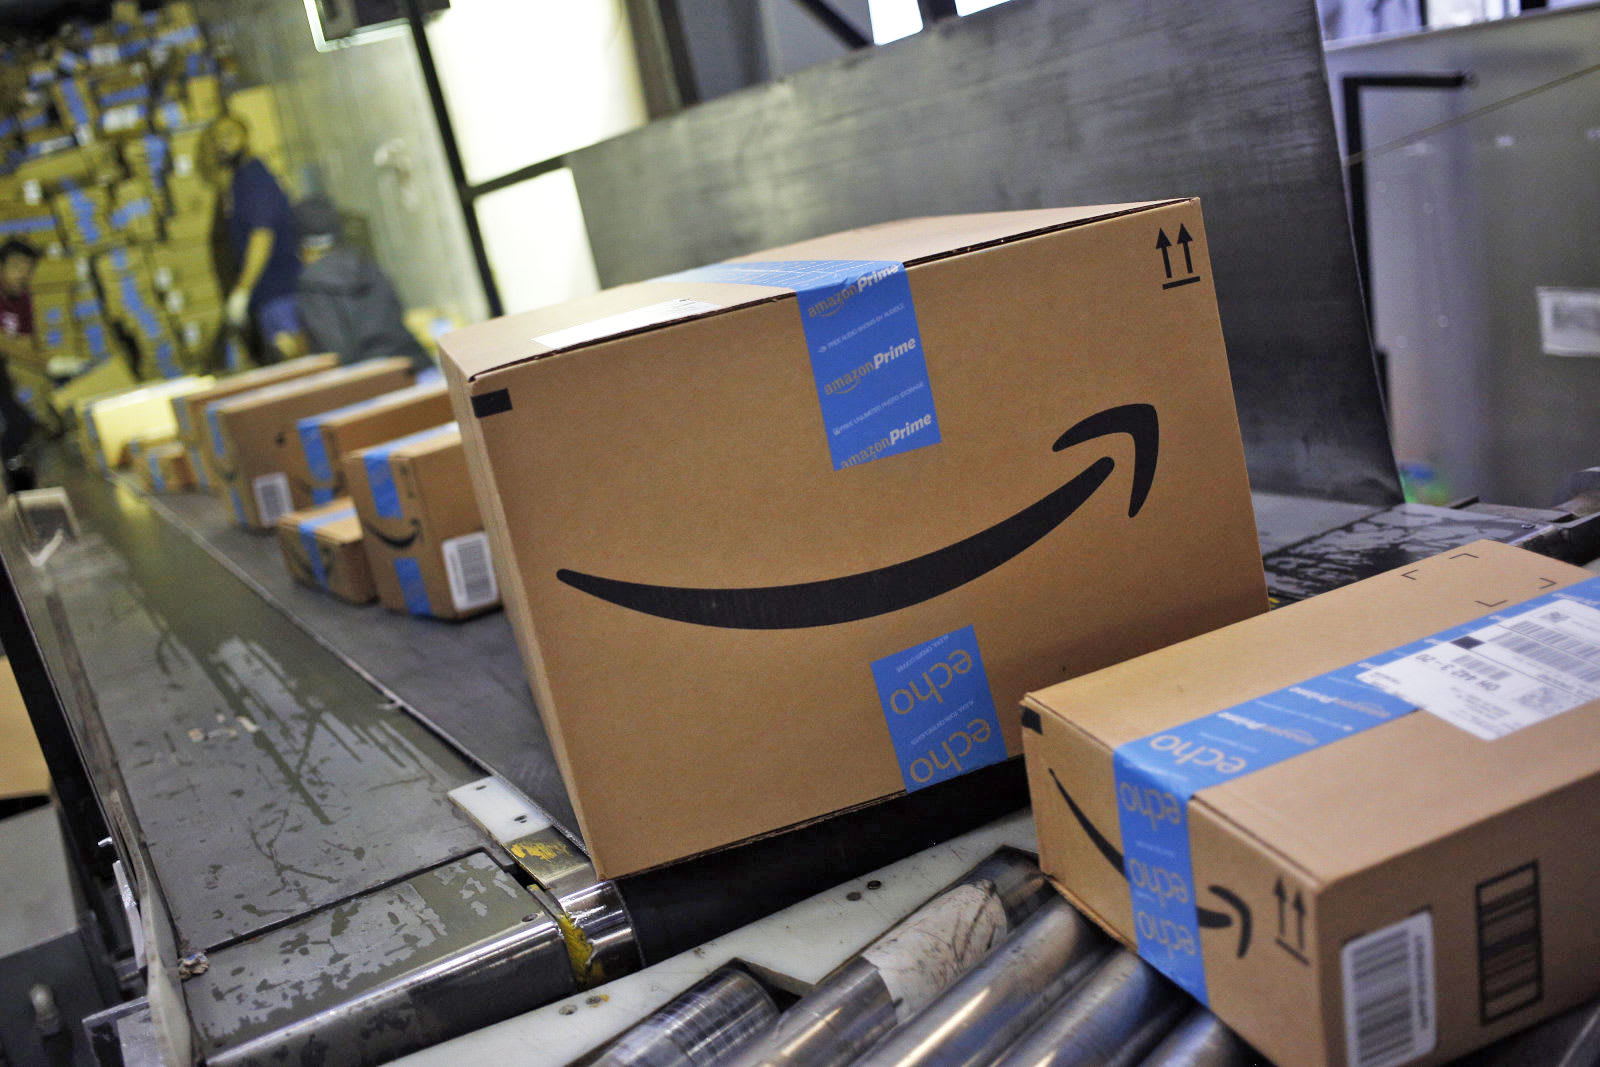 Amazon lowers its free shipping threshold to counter Walmart